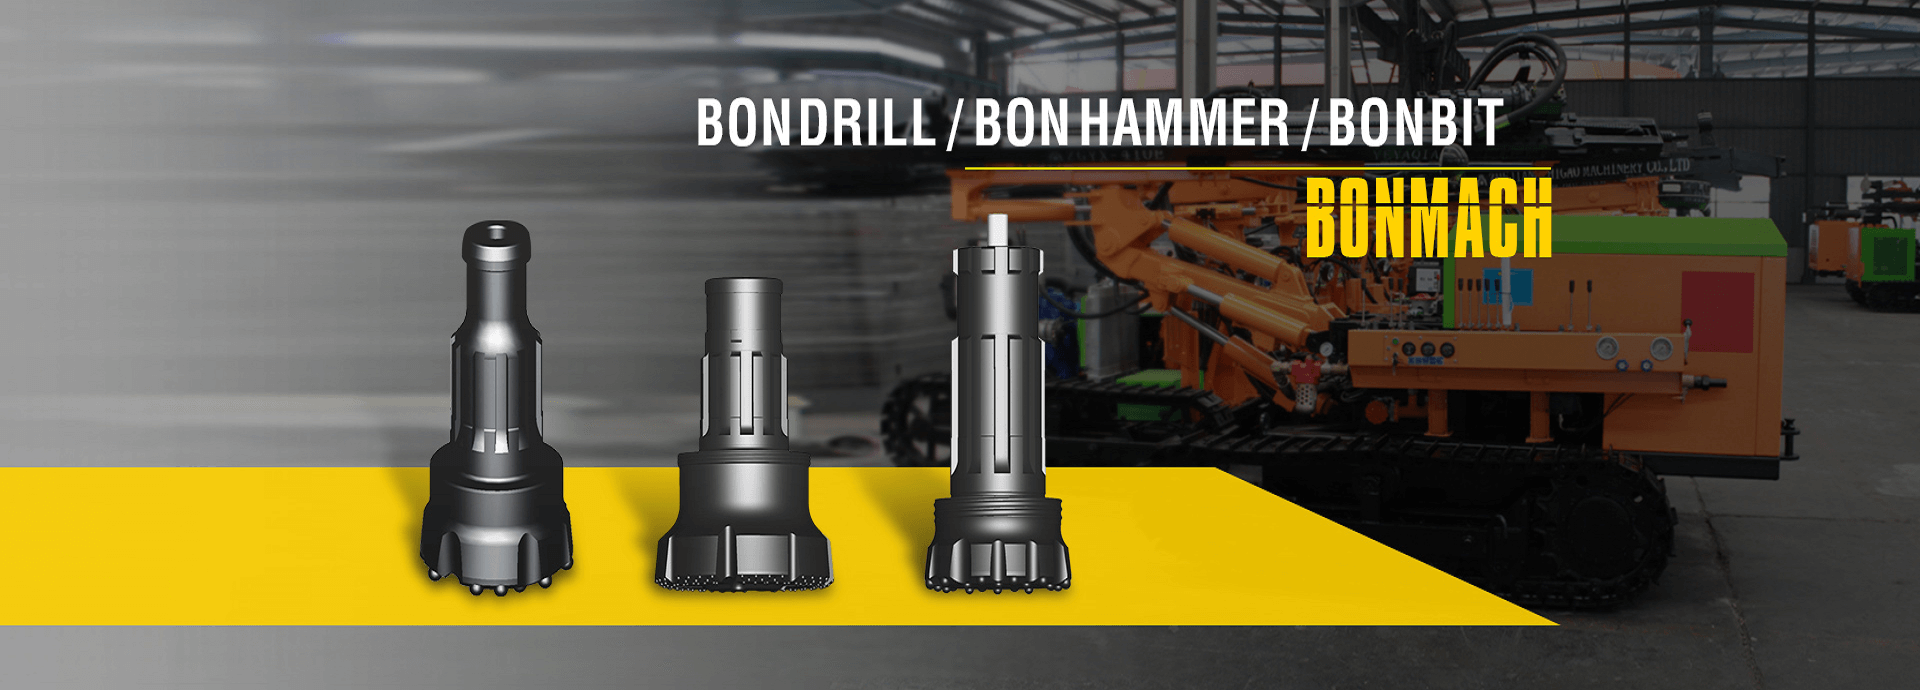 BONMACH-Rock drill bits manufacturer and supplier